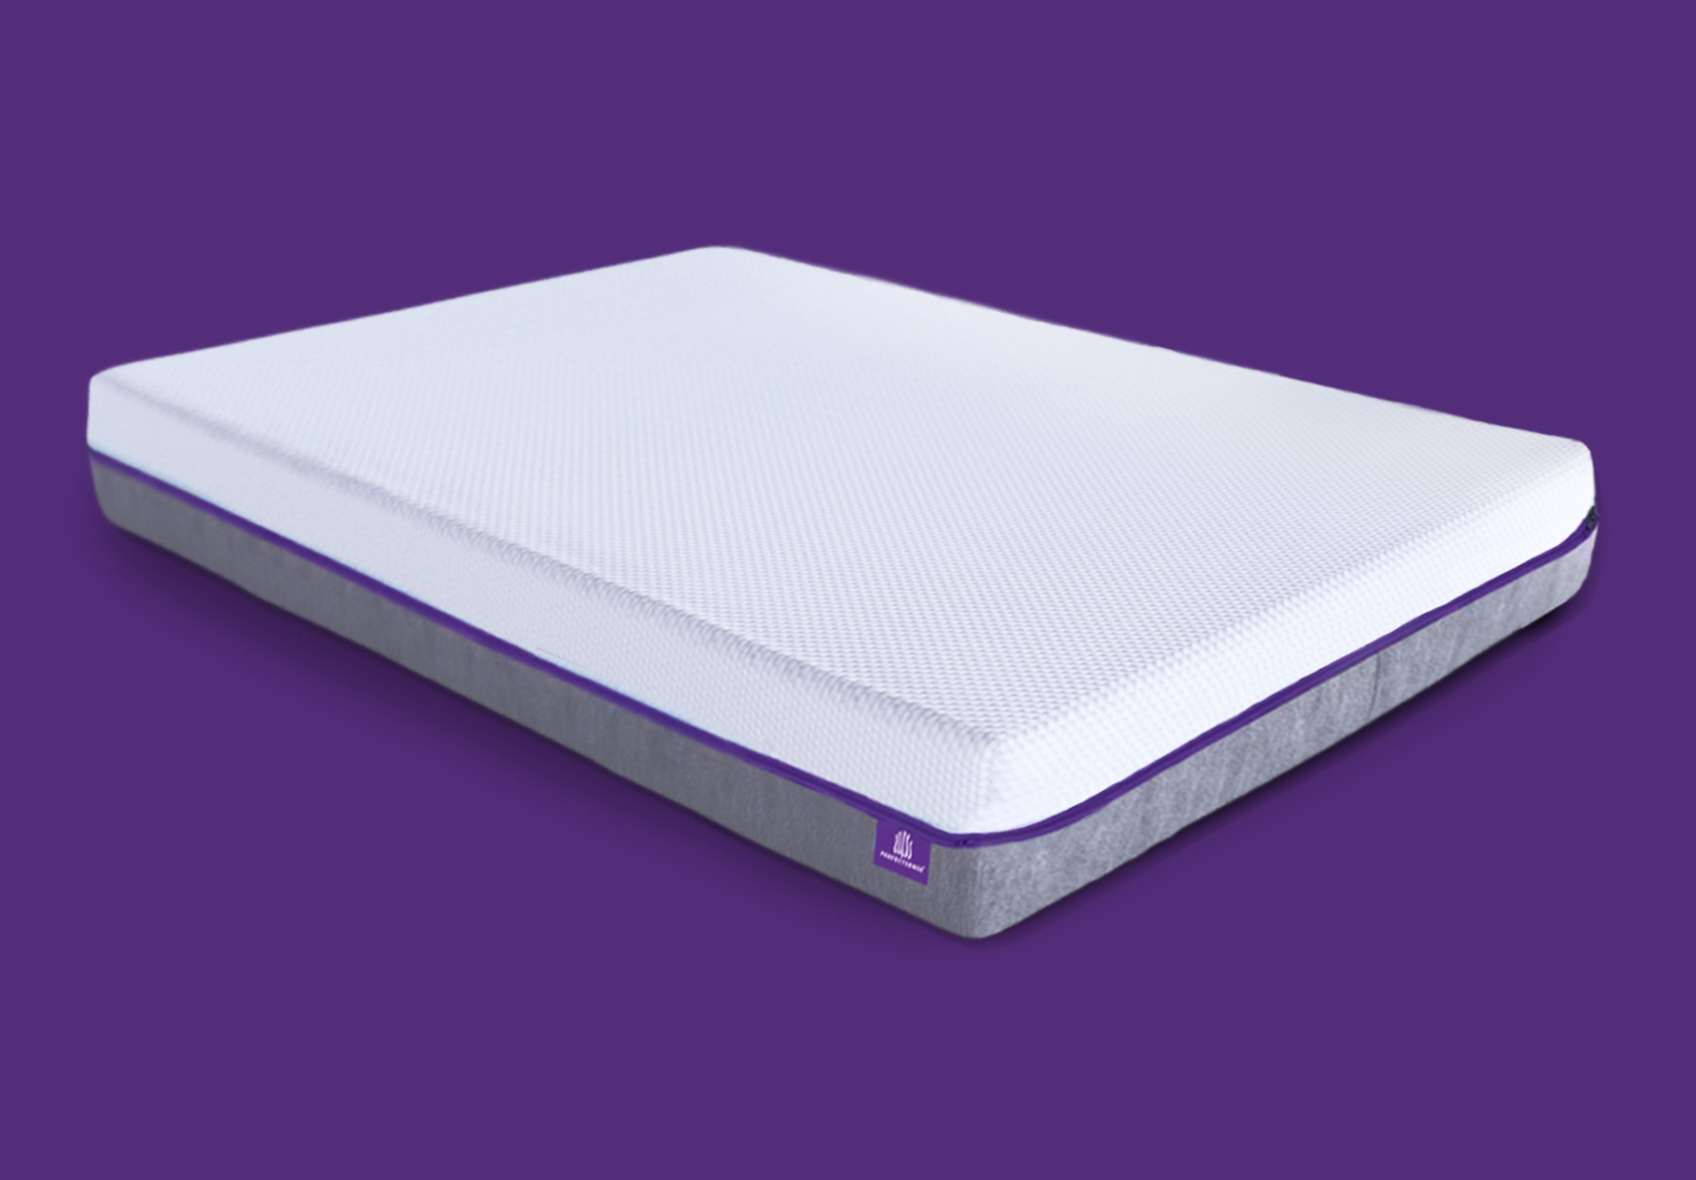 white memory foam mattress against purple background